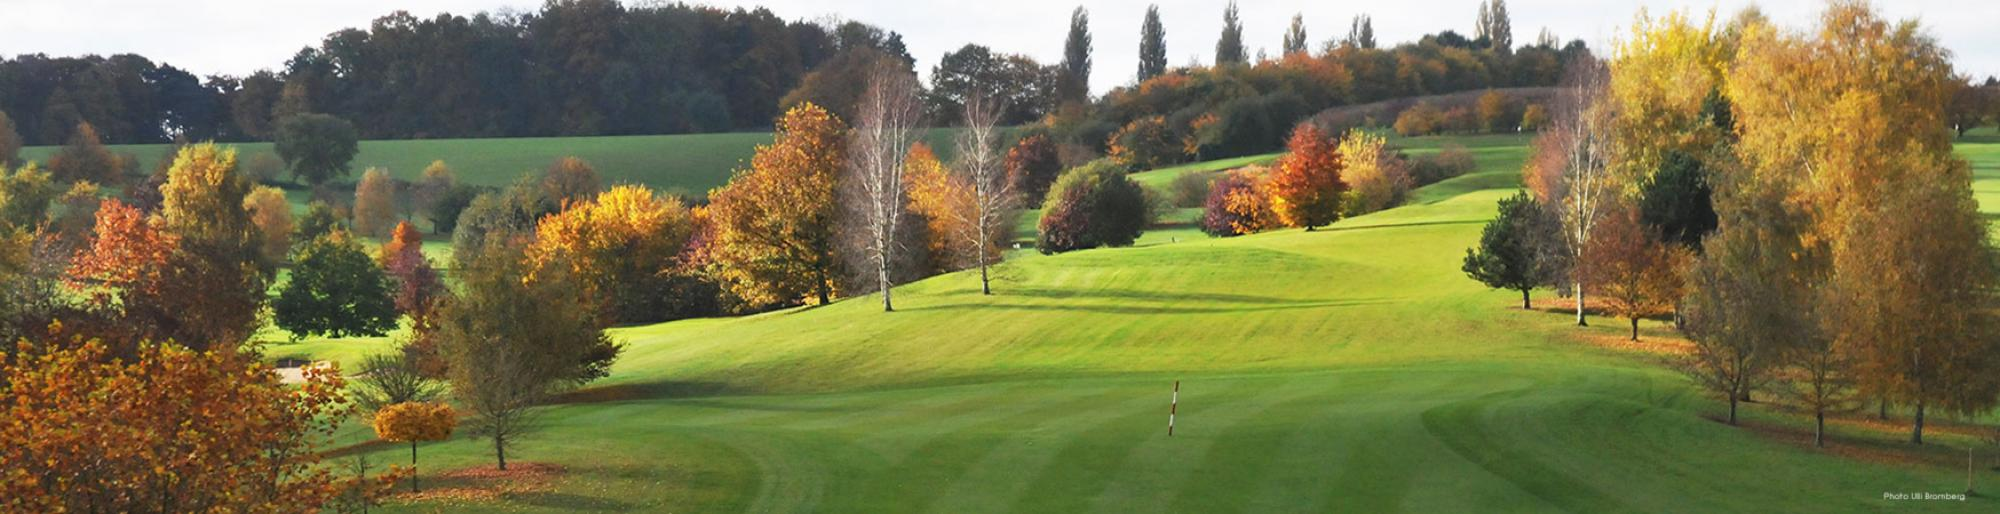 Golf L Empereur has got several of the preferred golf course around Brussels Waterloo & Mons